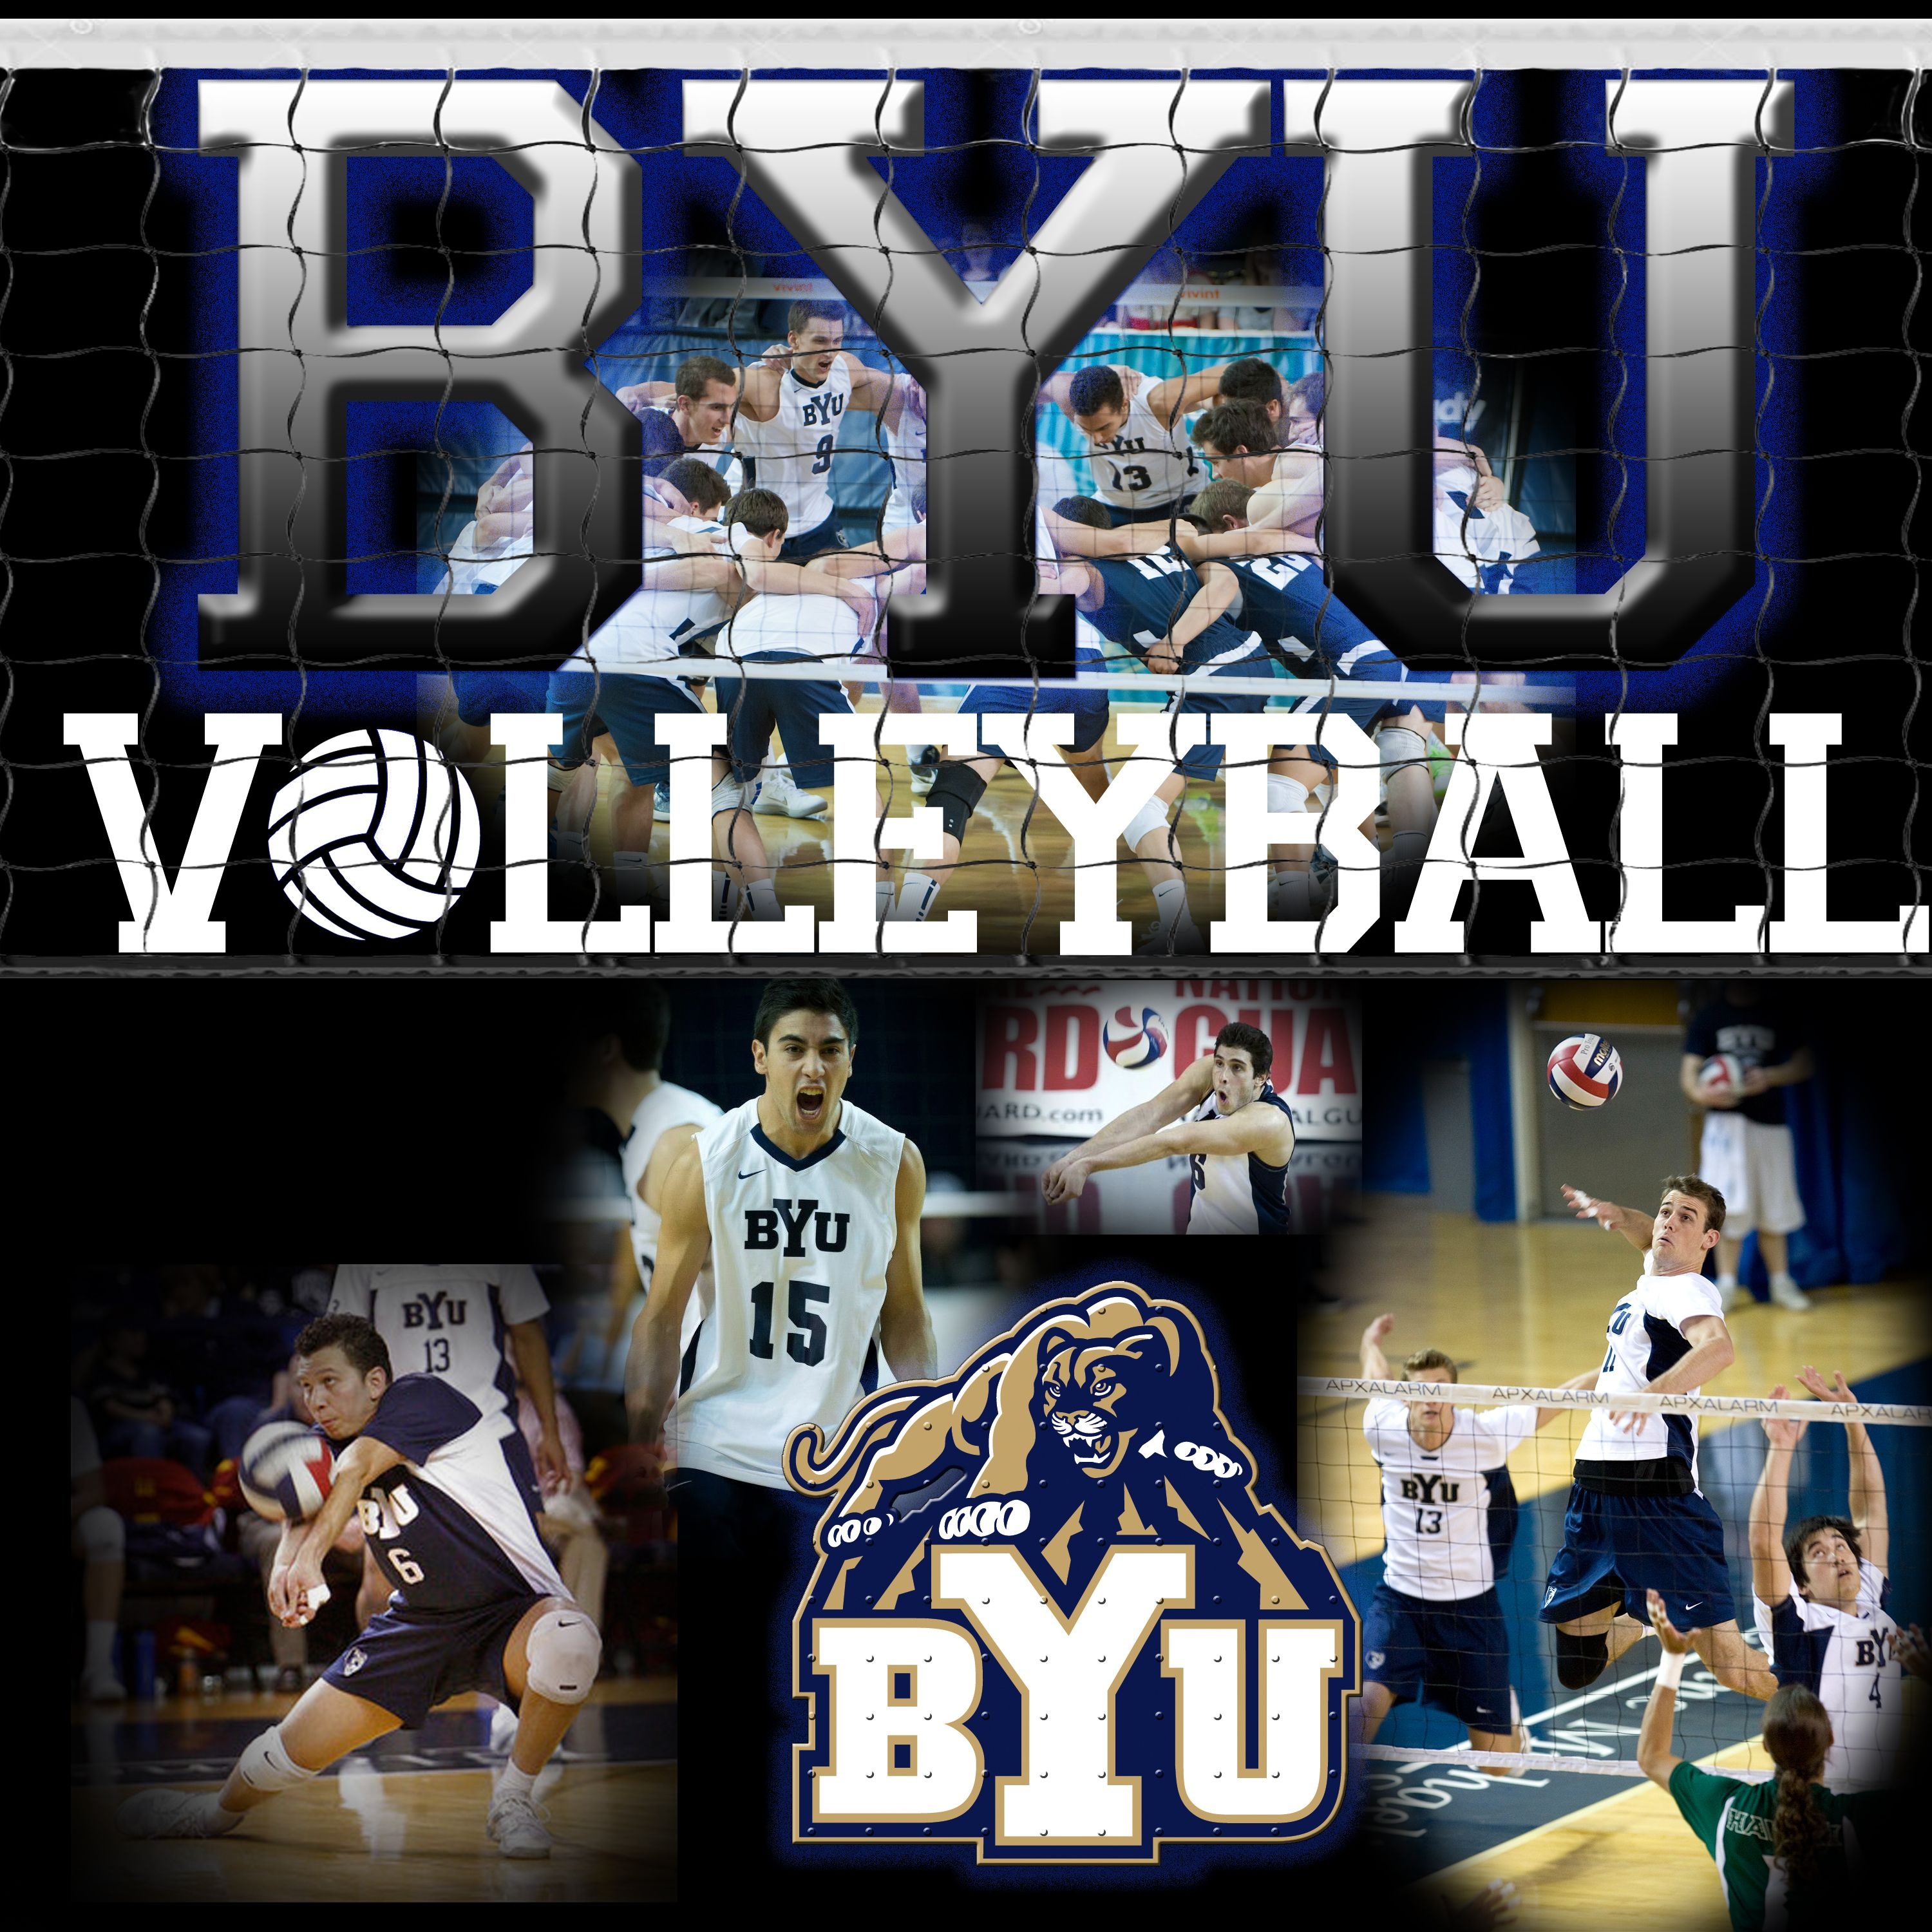 Pin By Jacob Nuckols On Digital Photography Byu Byu Sports Byu Cougars